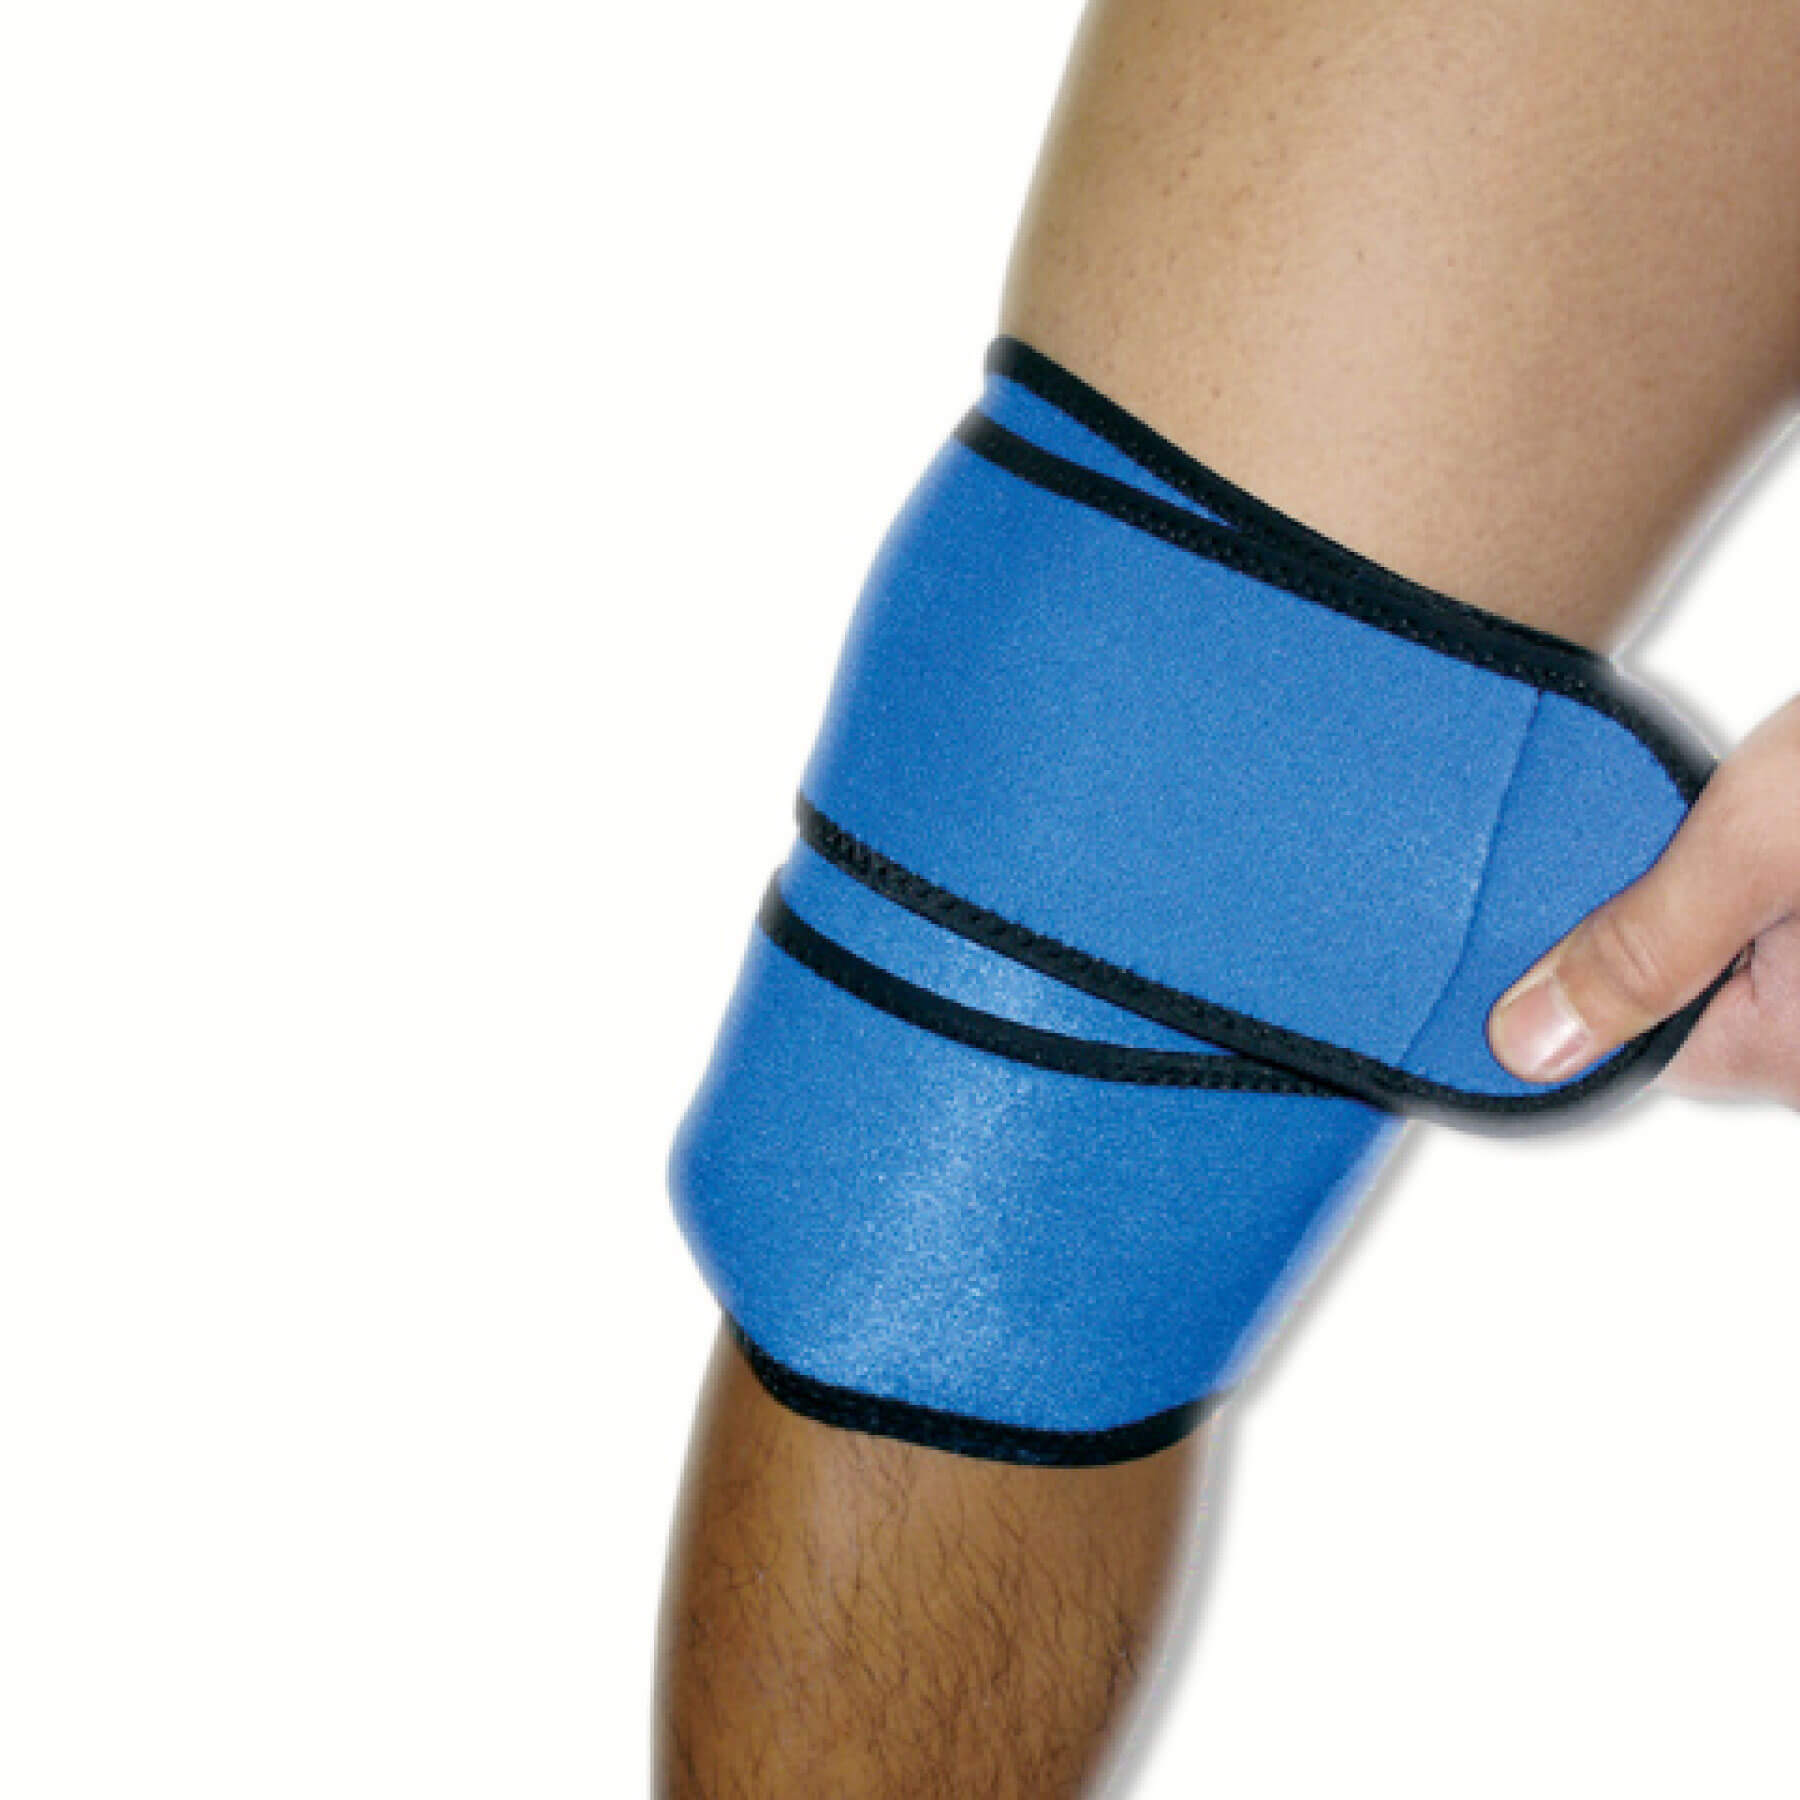 Hot/Cold Wrap on knee